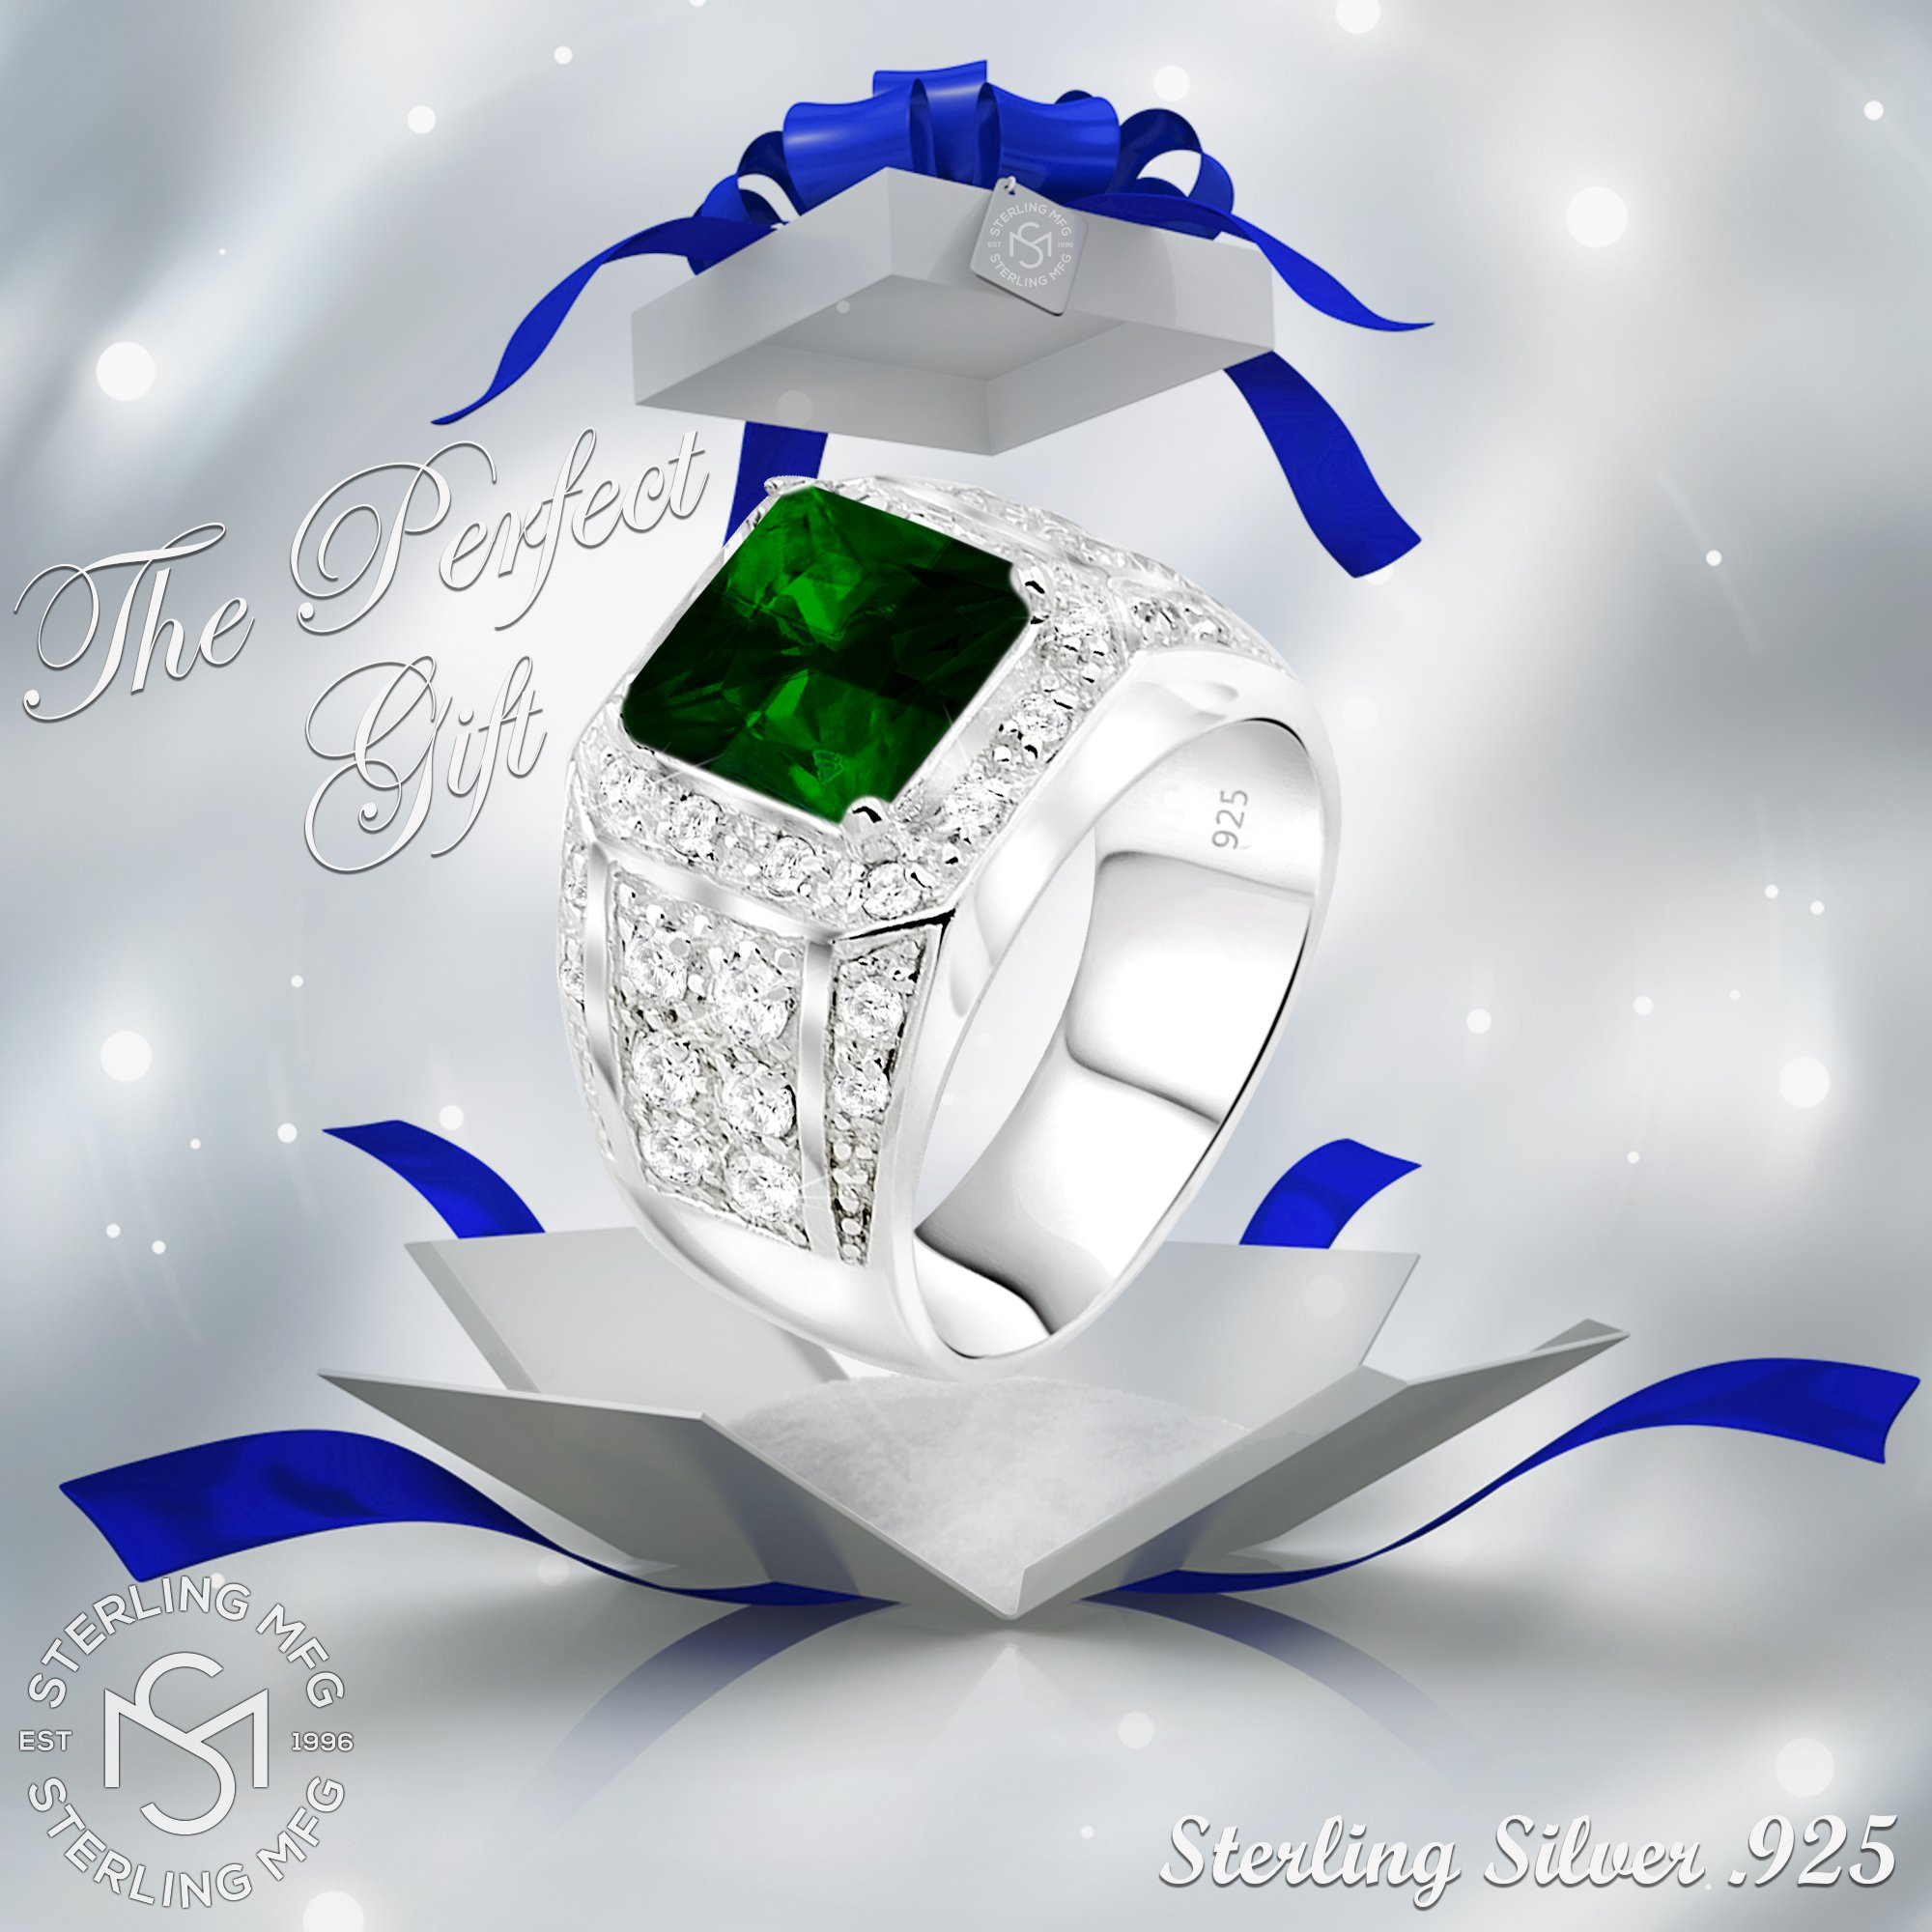 Men's Elegant Sterling Silver .925 Ring High Polish Princess Cut Featuring a Synthetic Green Emerald and 32 Fancy Round Cubic Zirconia (CZ) Stones by Sterling Manufacturers (Image #8)